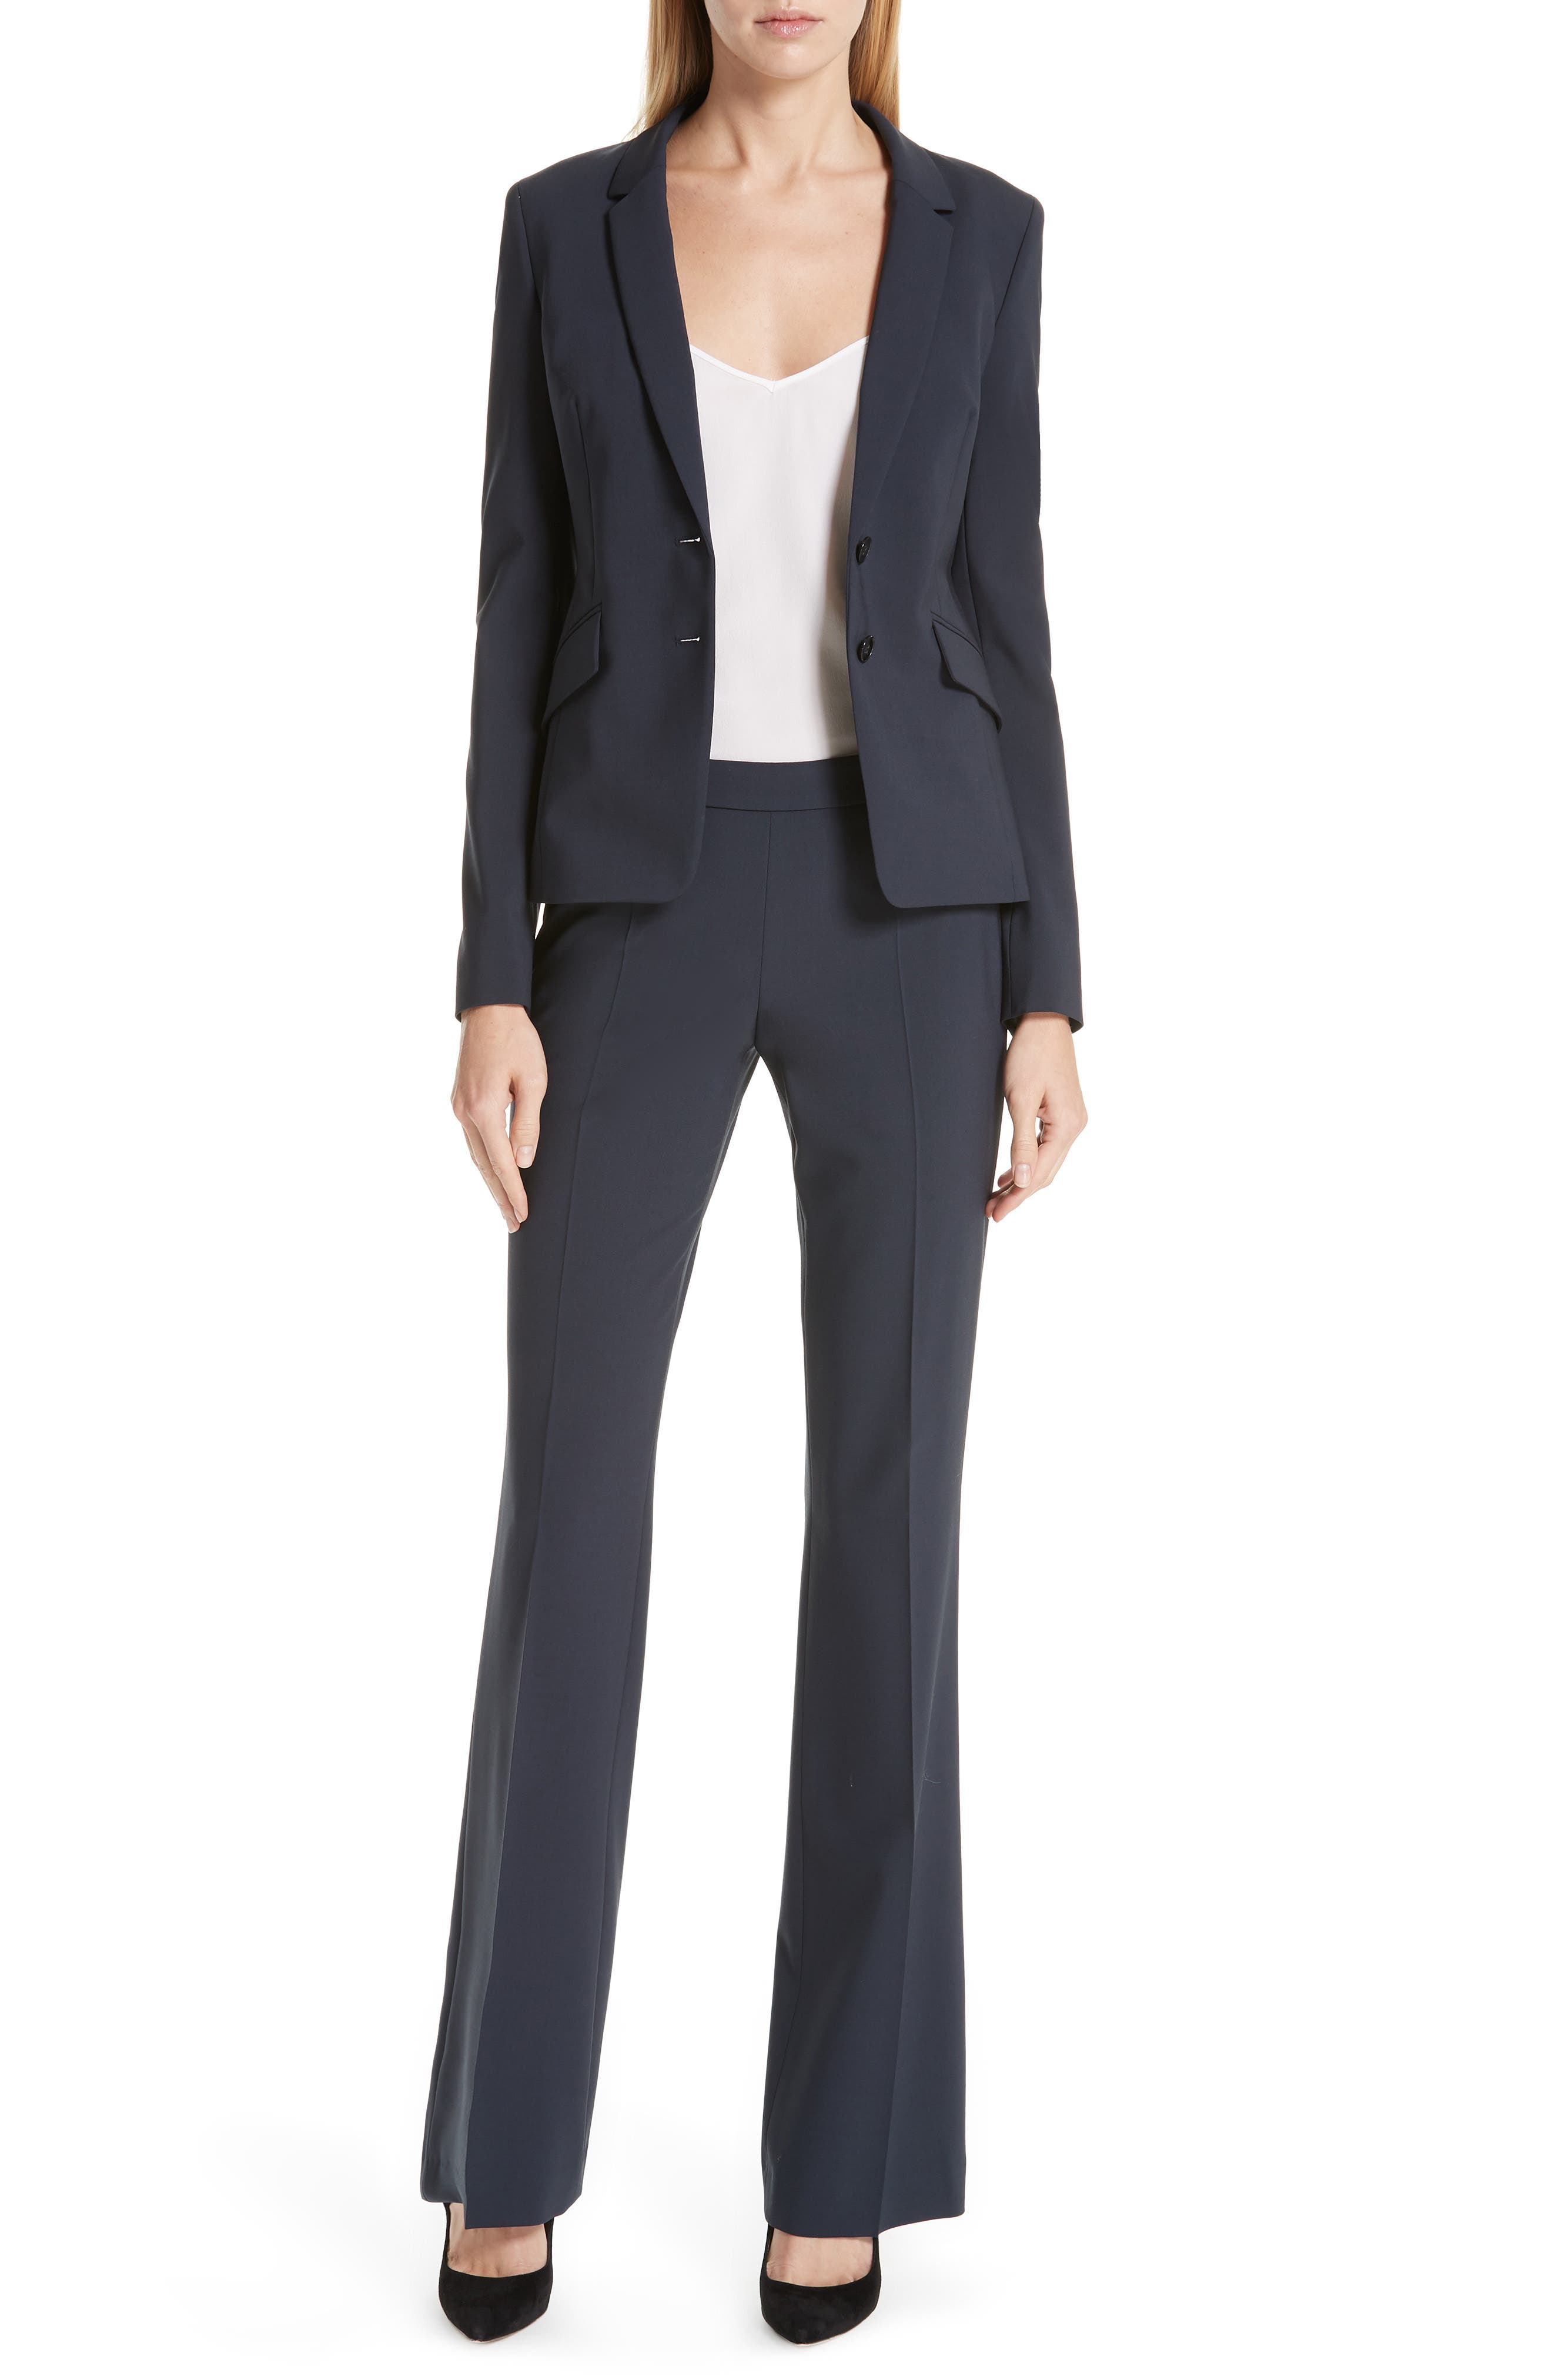 BOSS, Tulea Side Zip Tropical Stretch Wool Trousers, Alternate thumbnail 8, color, NAVY